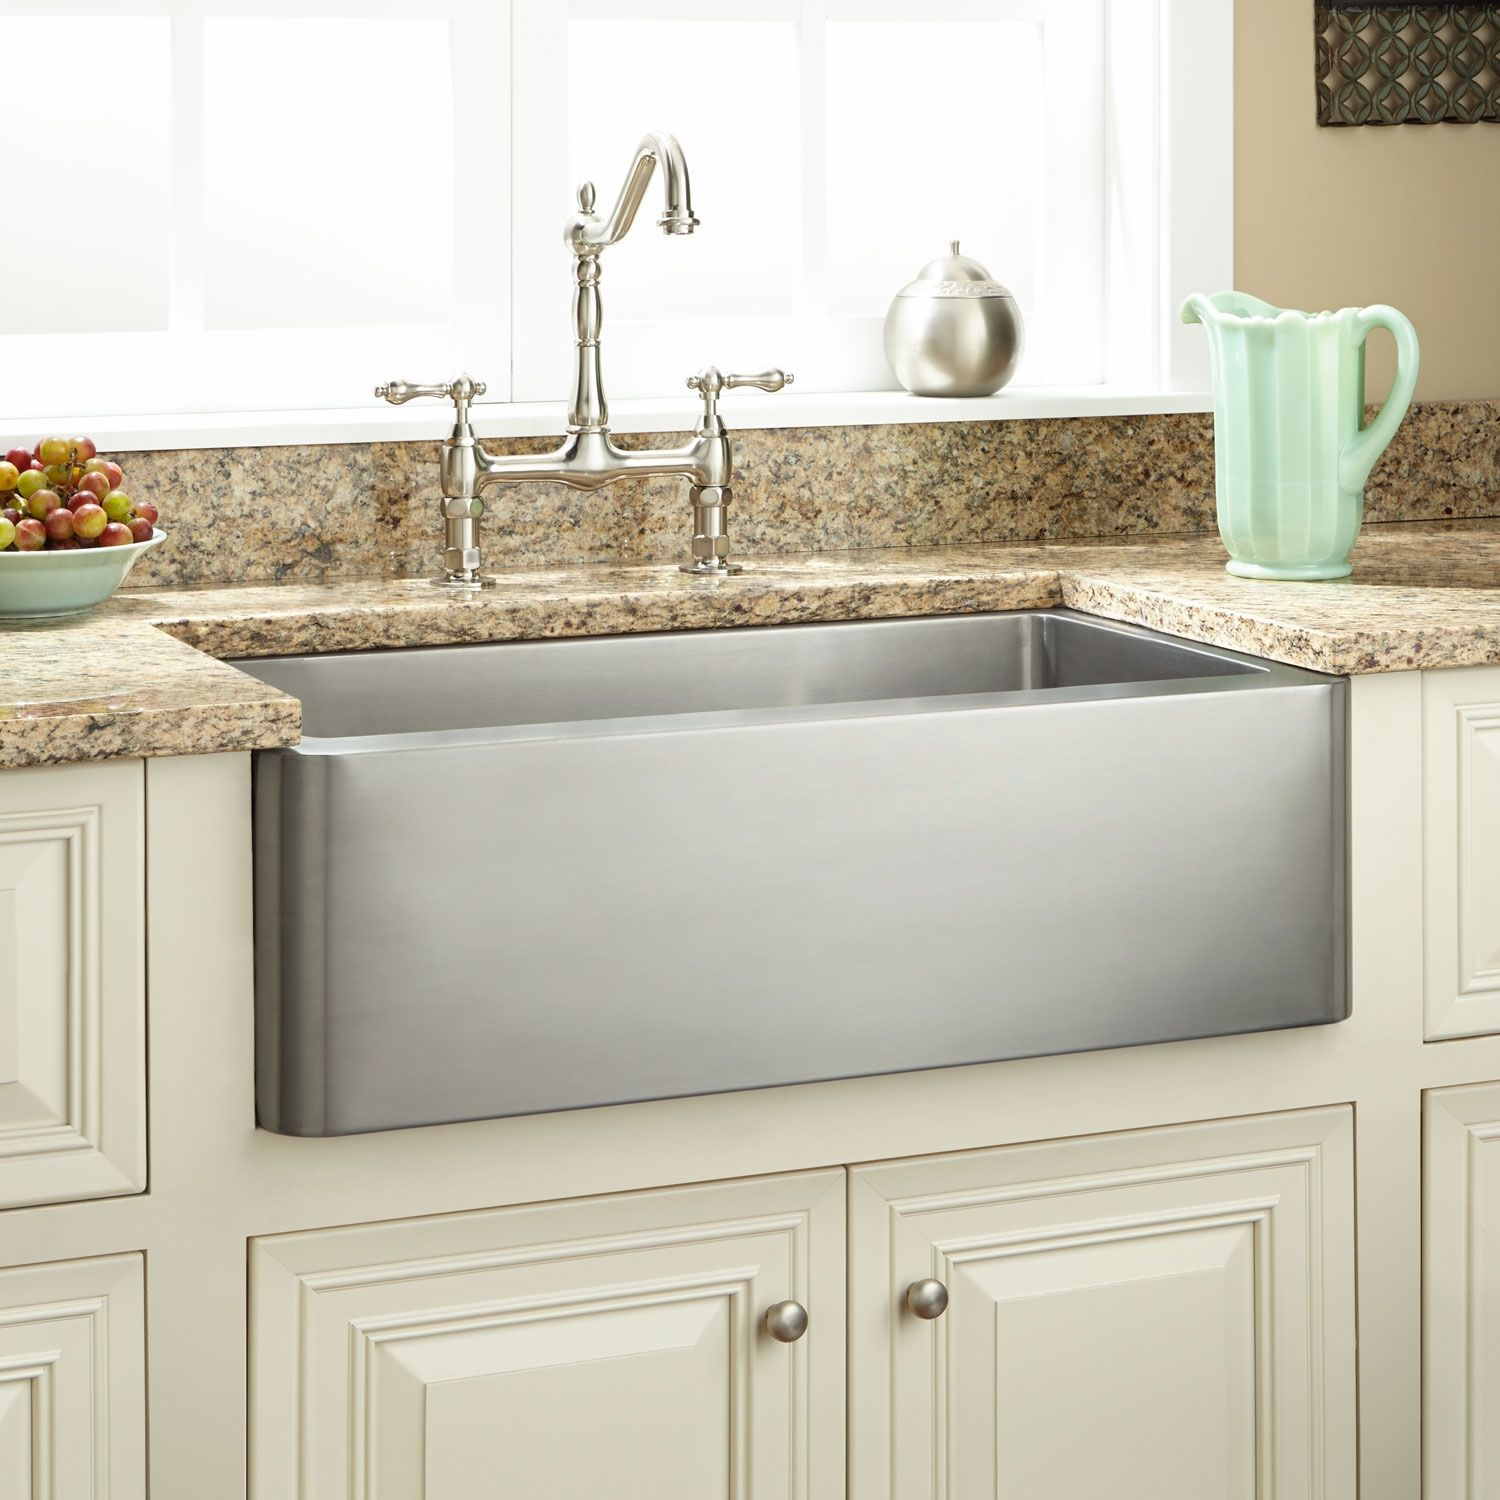 24 Fournier Stainless Steel Farmhouse Sink Curved Apron